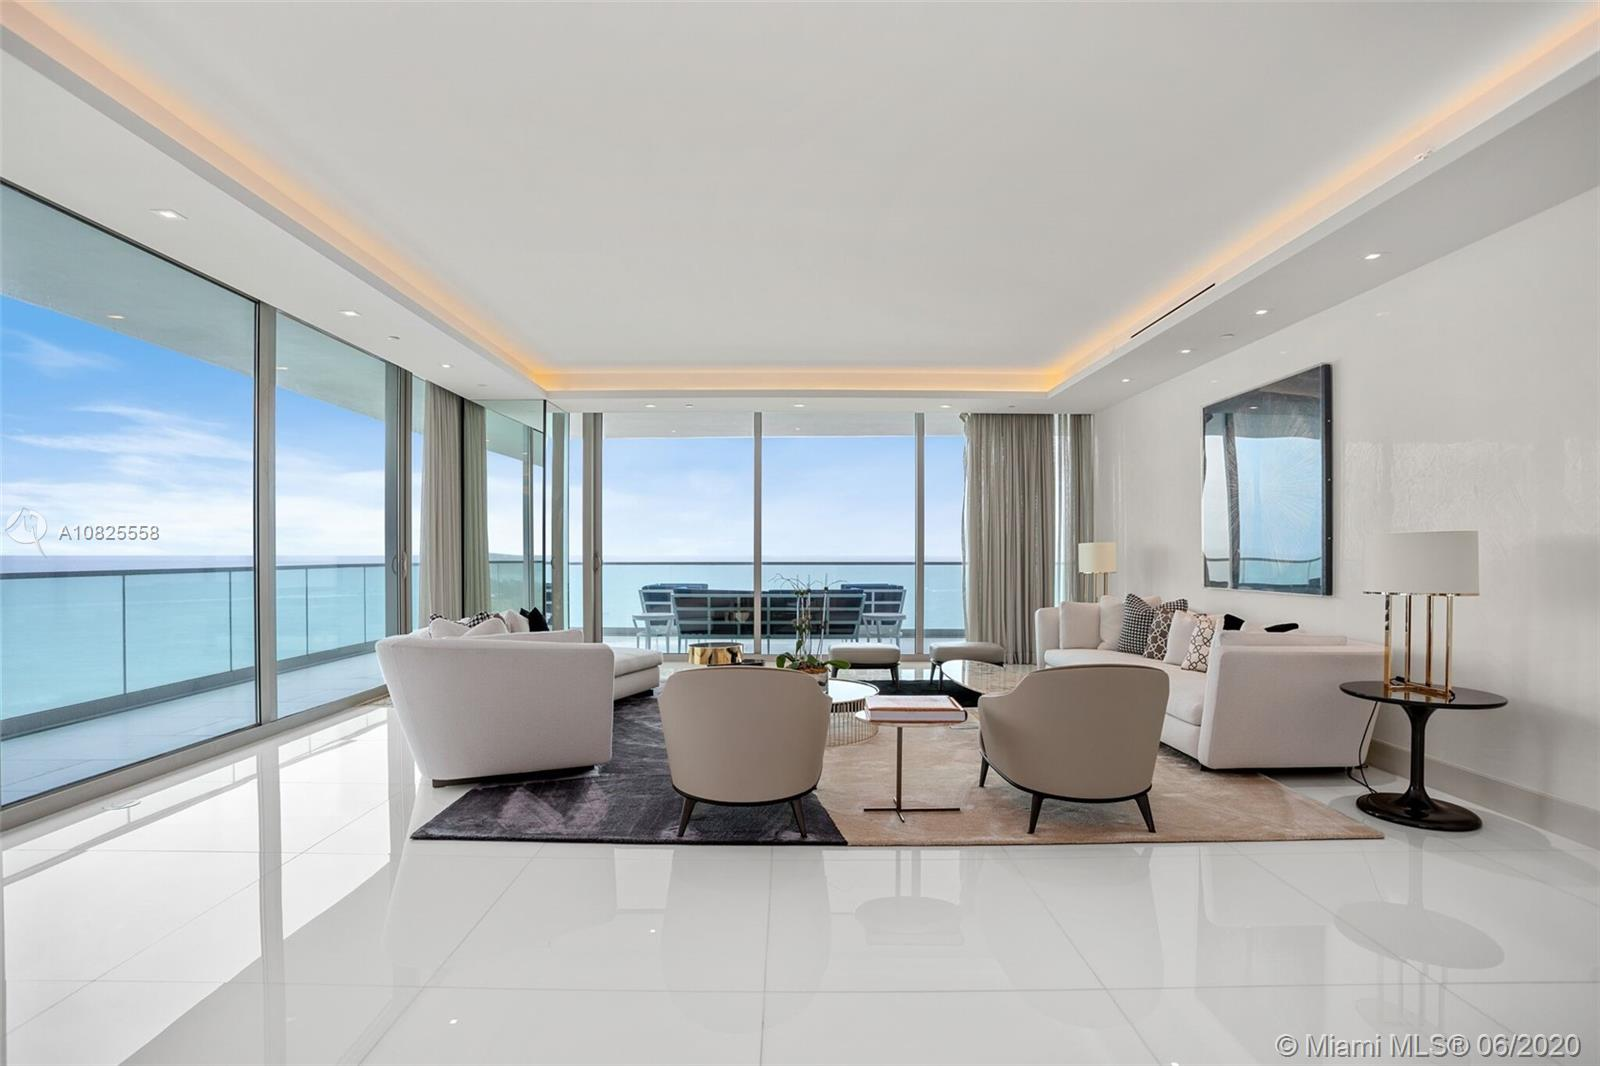 image #1 of property, Oceana Bal Harbour Condo, Unit 1001